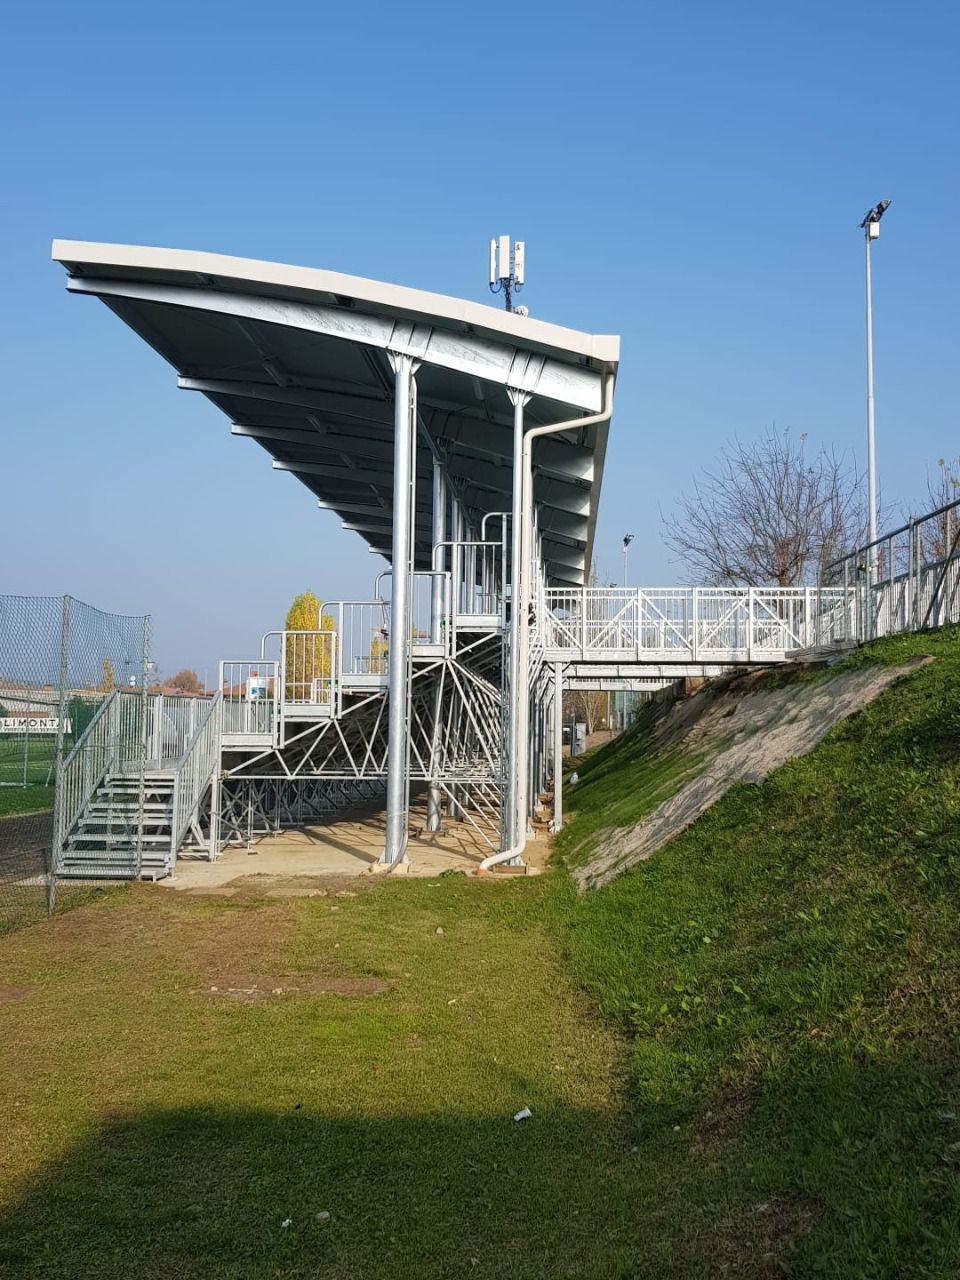 Gallery foto n.1 Overhanging cover - Football field